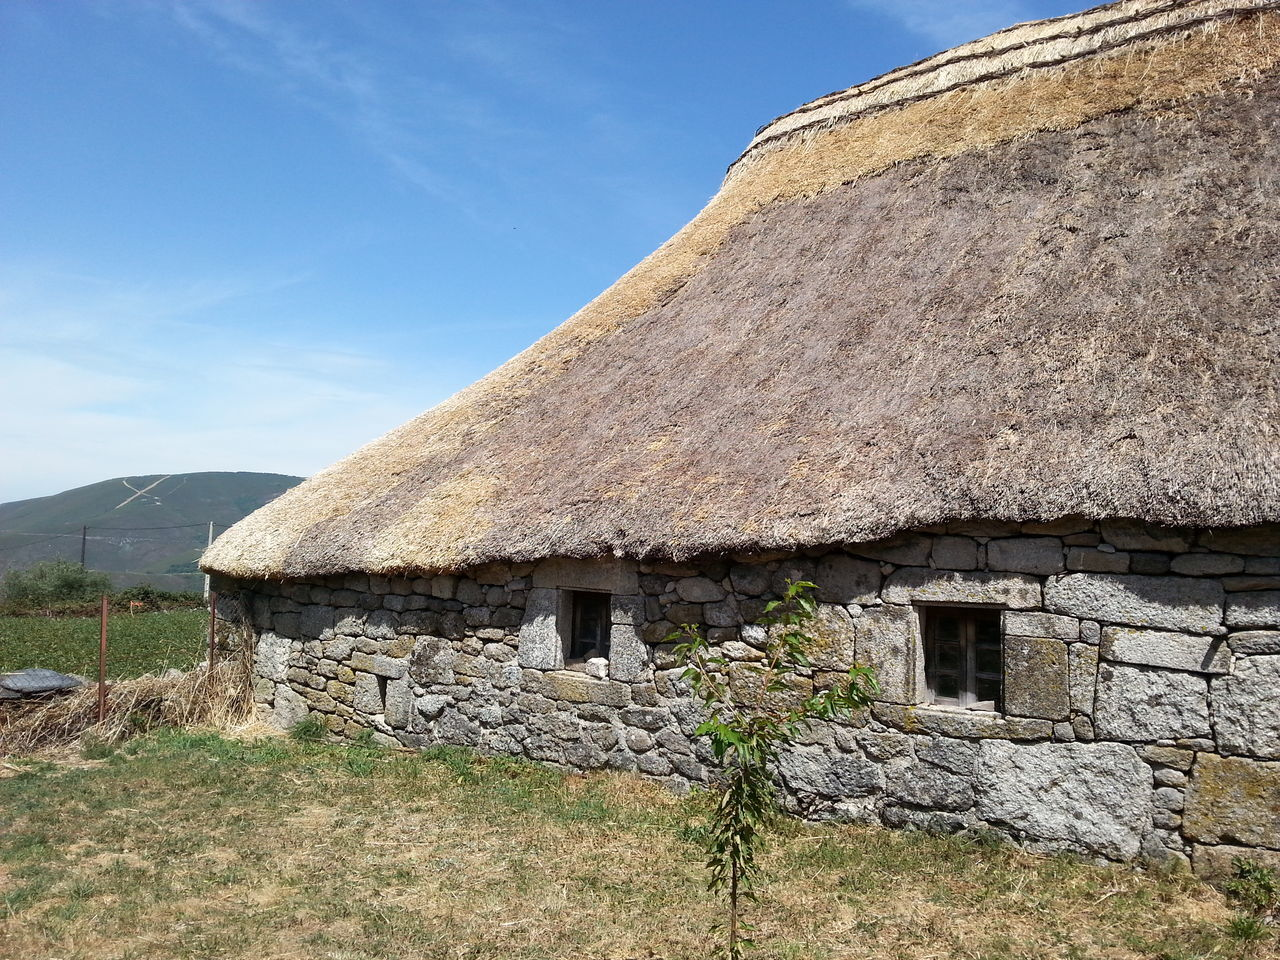 Thatched Roof Horizontal Architecture No People Day Growth Rural Scene Agriculture Nature Sky Outdoors